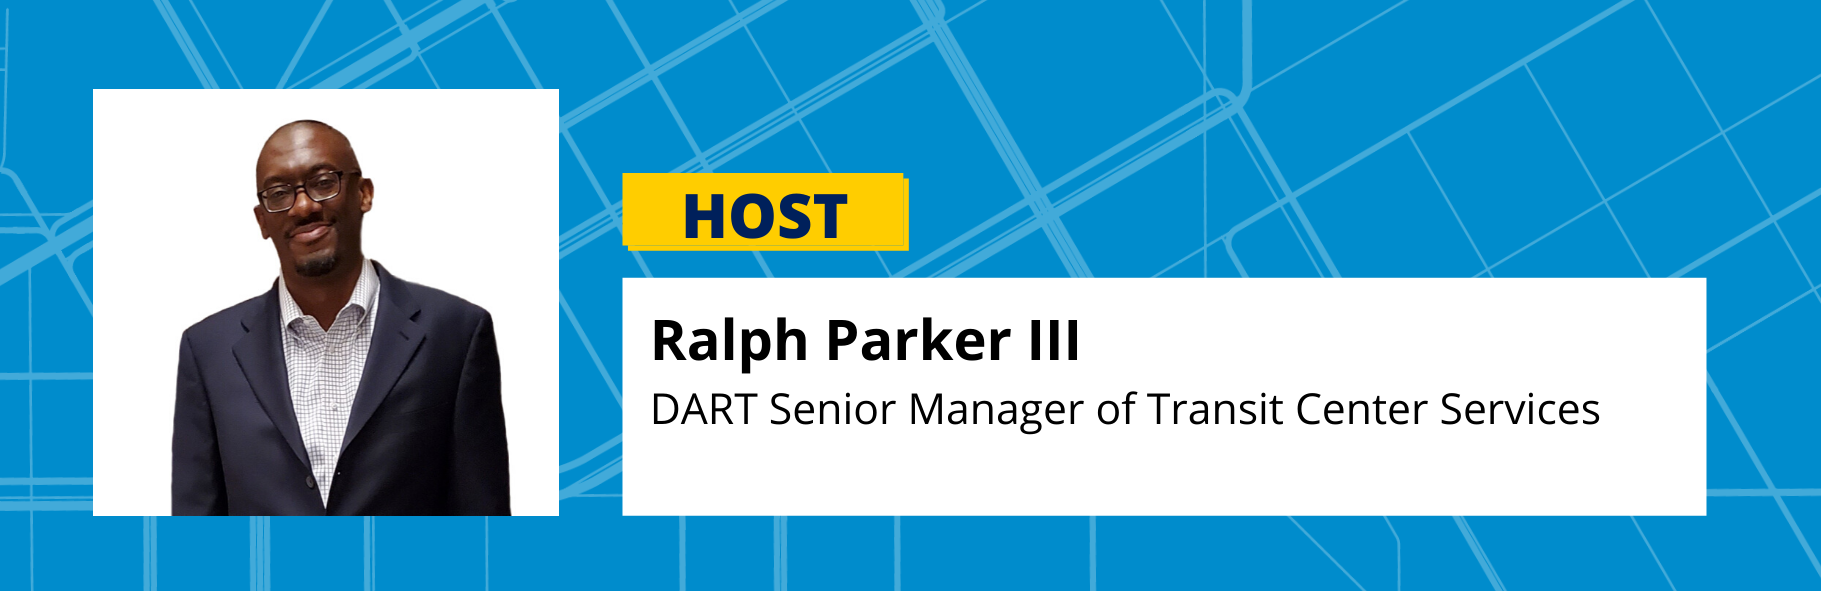 Ralph Parker III DART Senior Manager of Transit Center Services